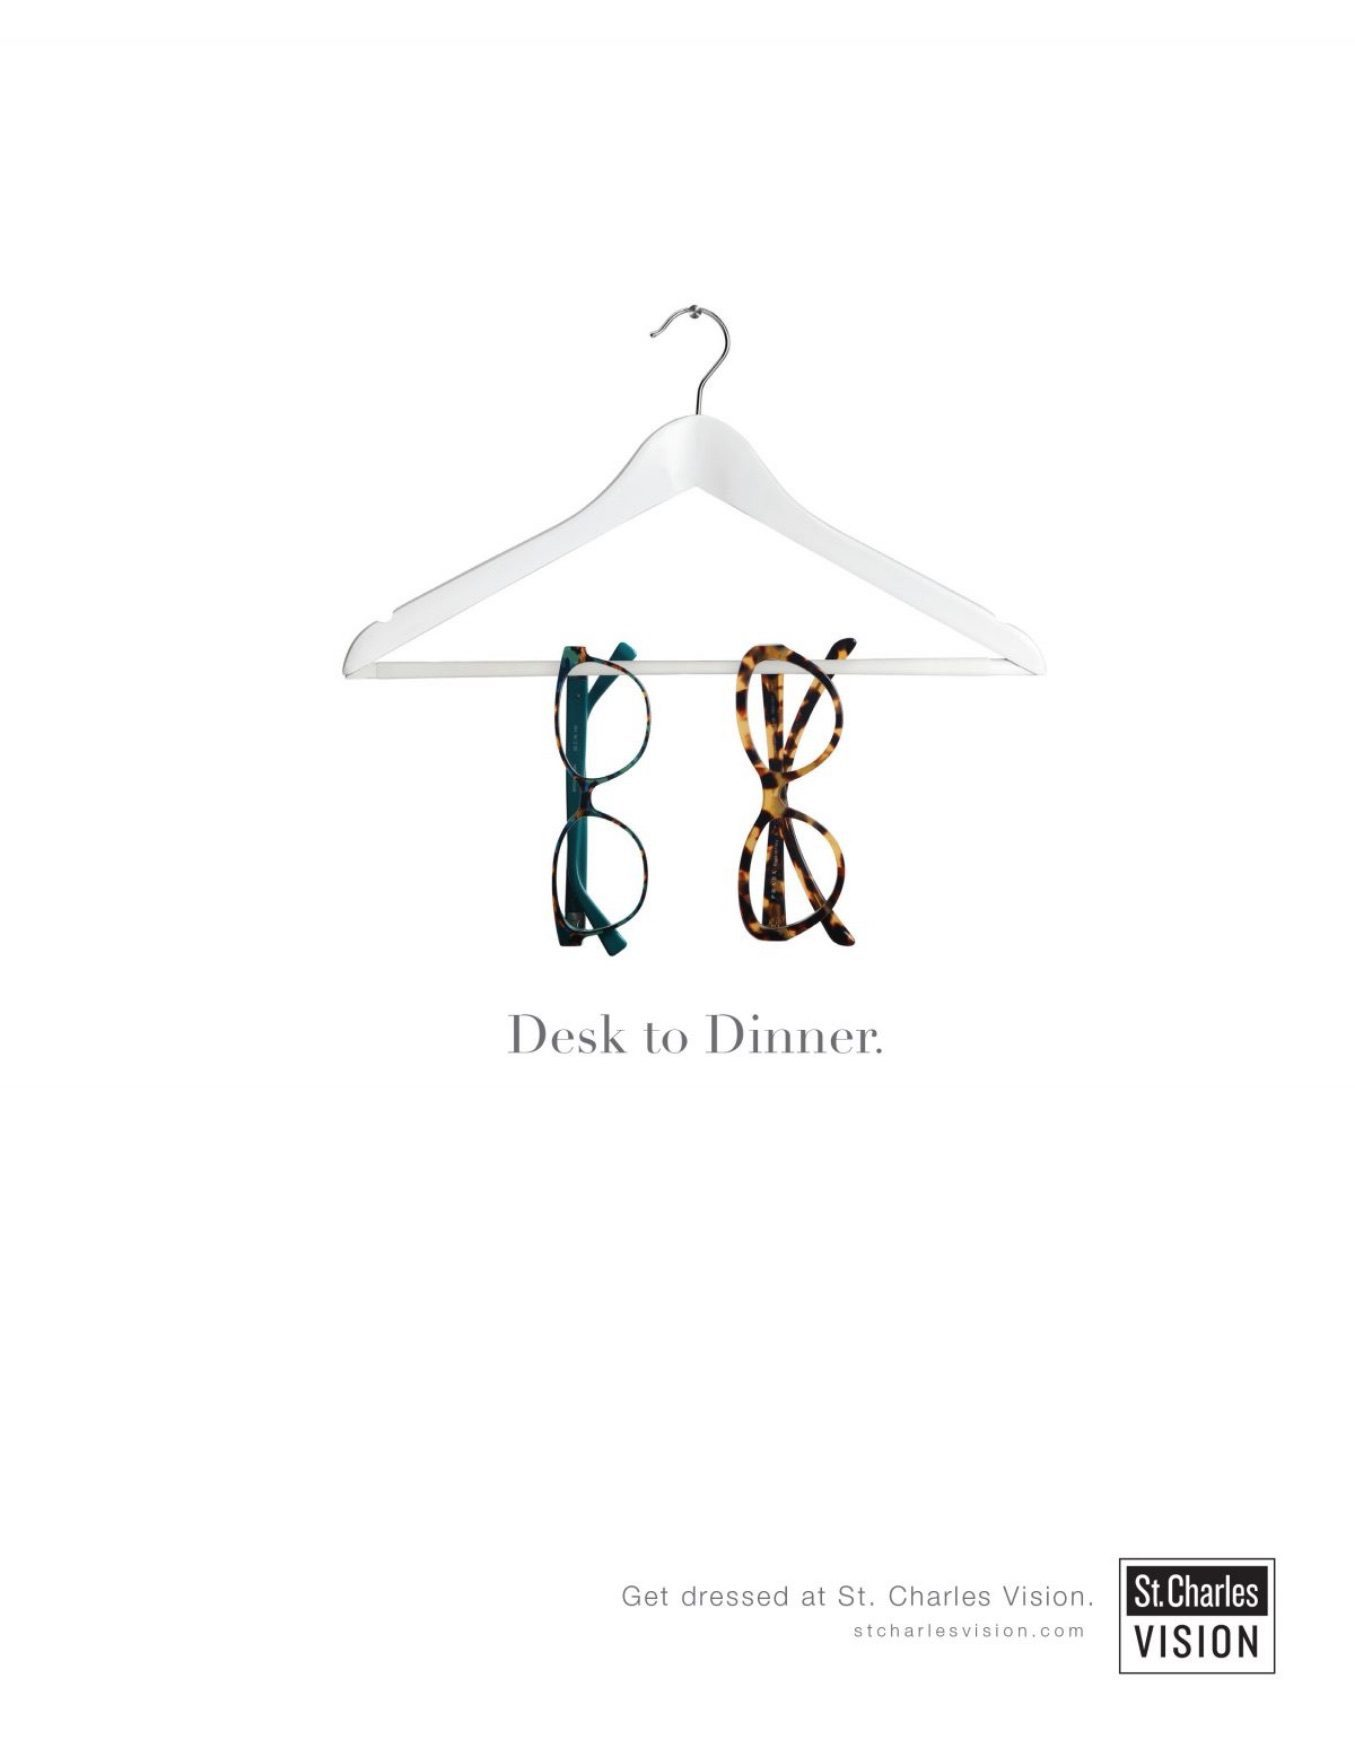 ad for eye glasses which depicts two pairs of eye glasses hung on a hanger against a white background